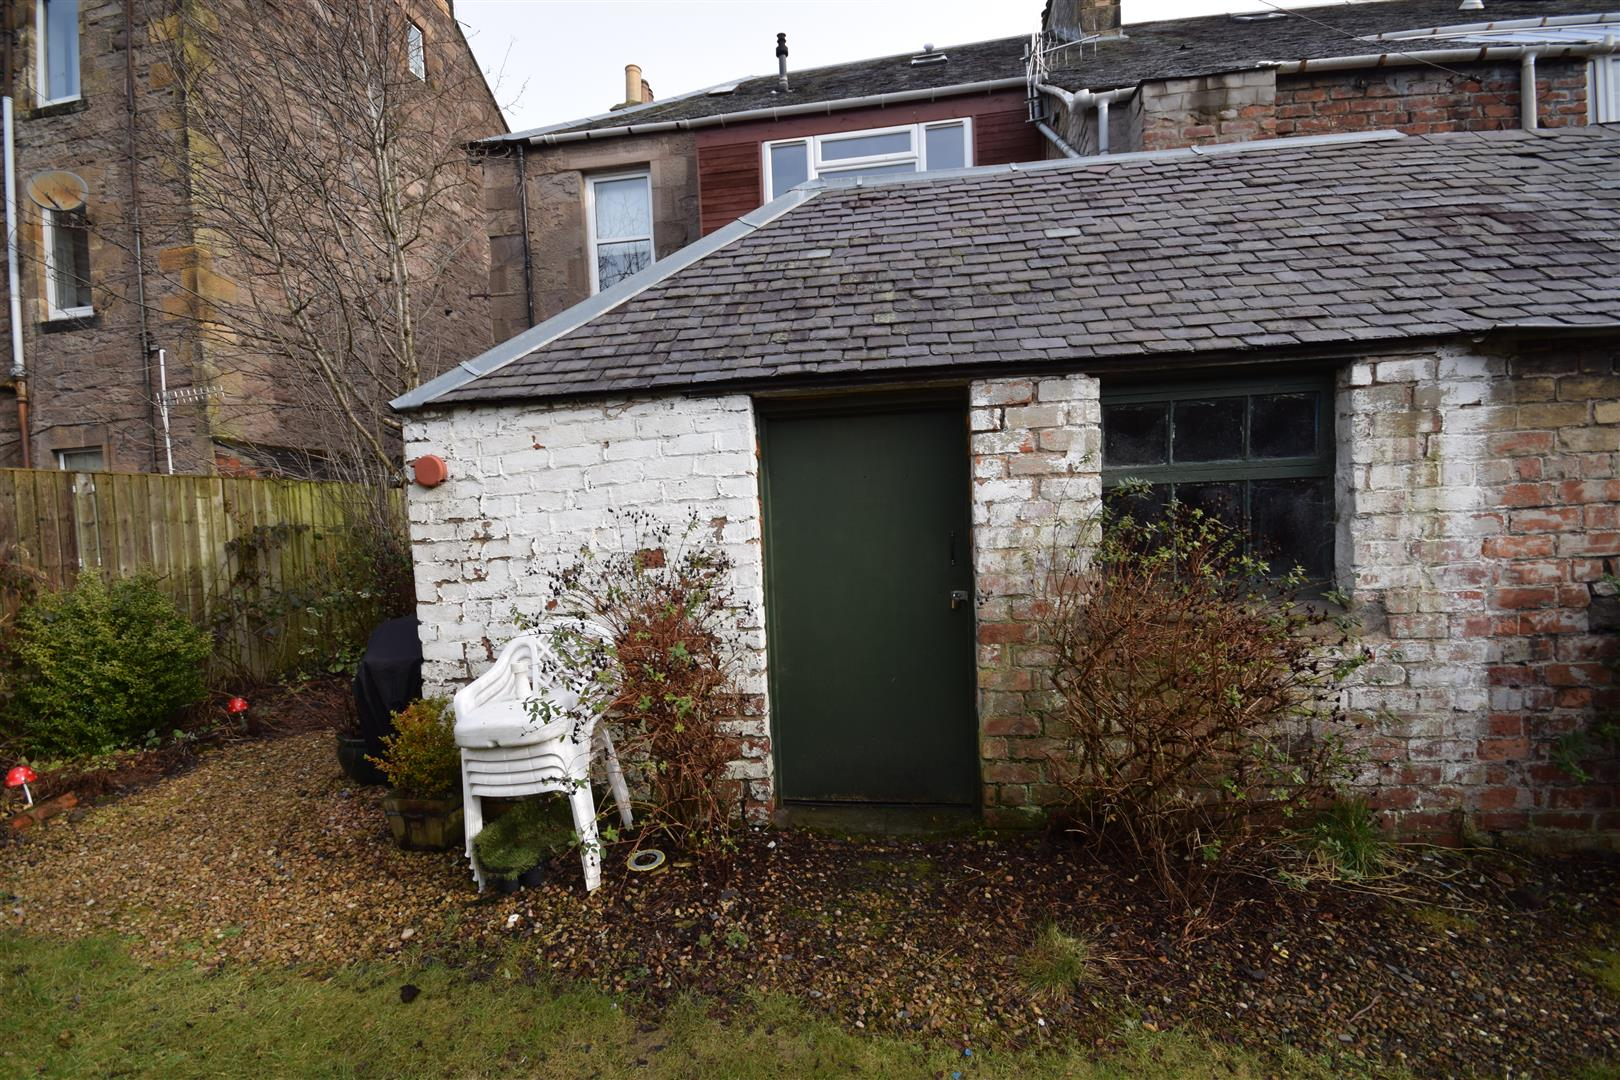 57, Priory Place, Perth, Perthshire, PH2 0EA, UK